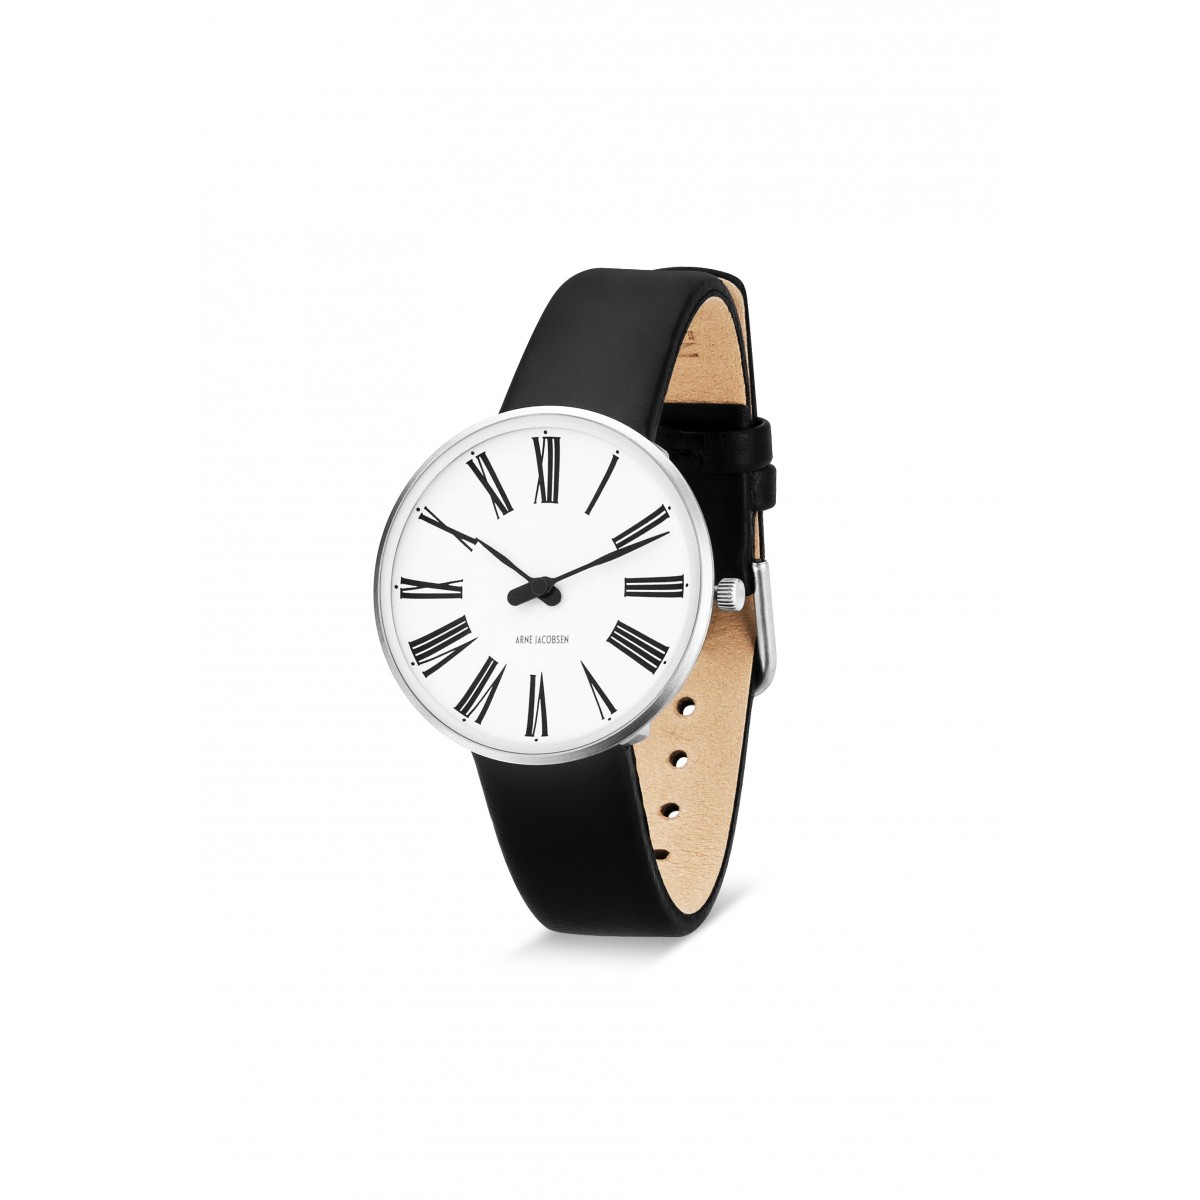 Arne Jacobsen armbåndsur ROMAN 34 and 40 MM sort rem/hvid skive-30